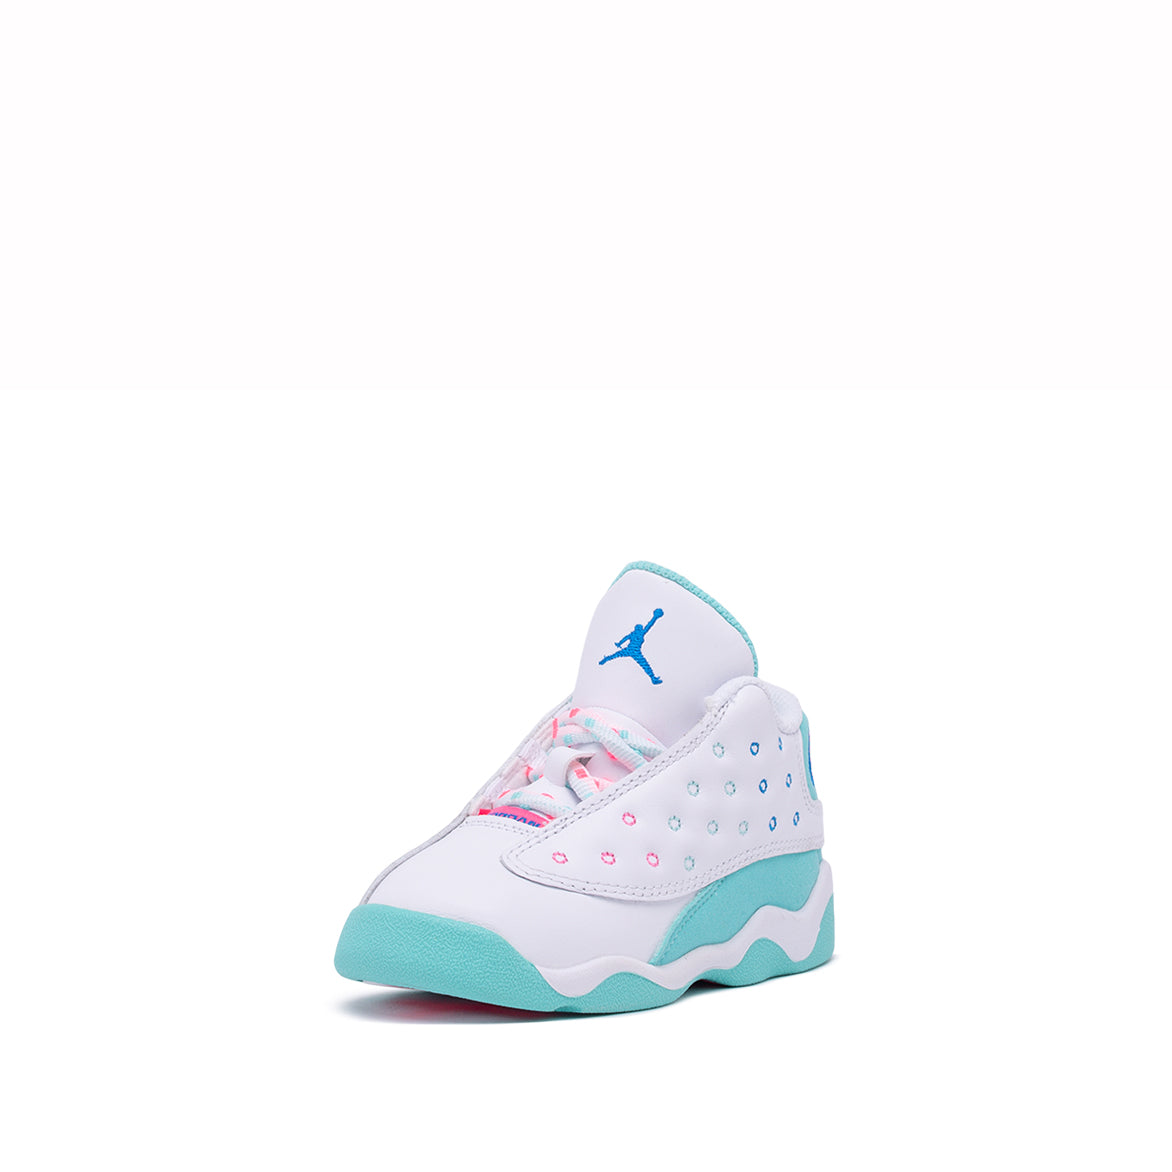 "AIR JORDAN 13 RETRO (TD) ""AURORA GREEN"""